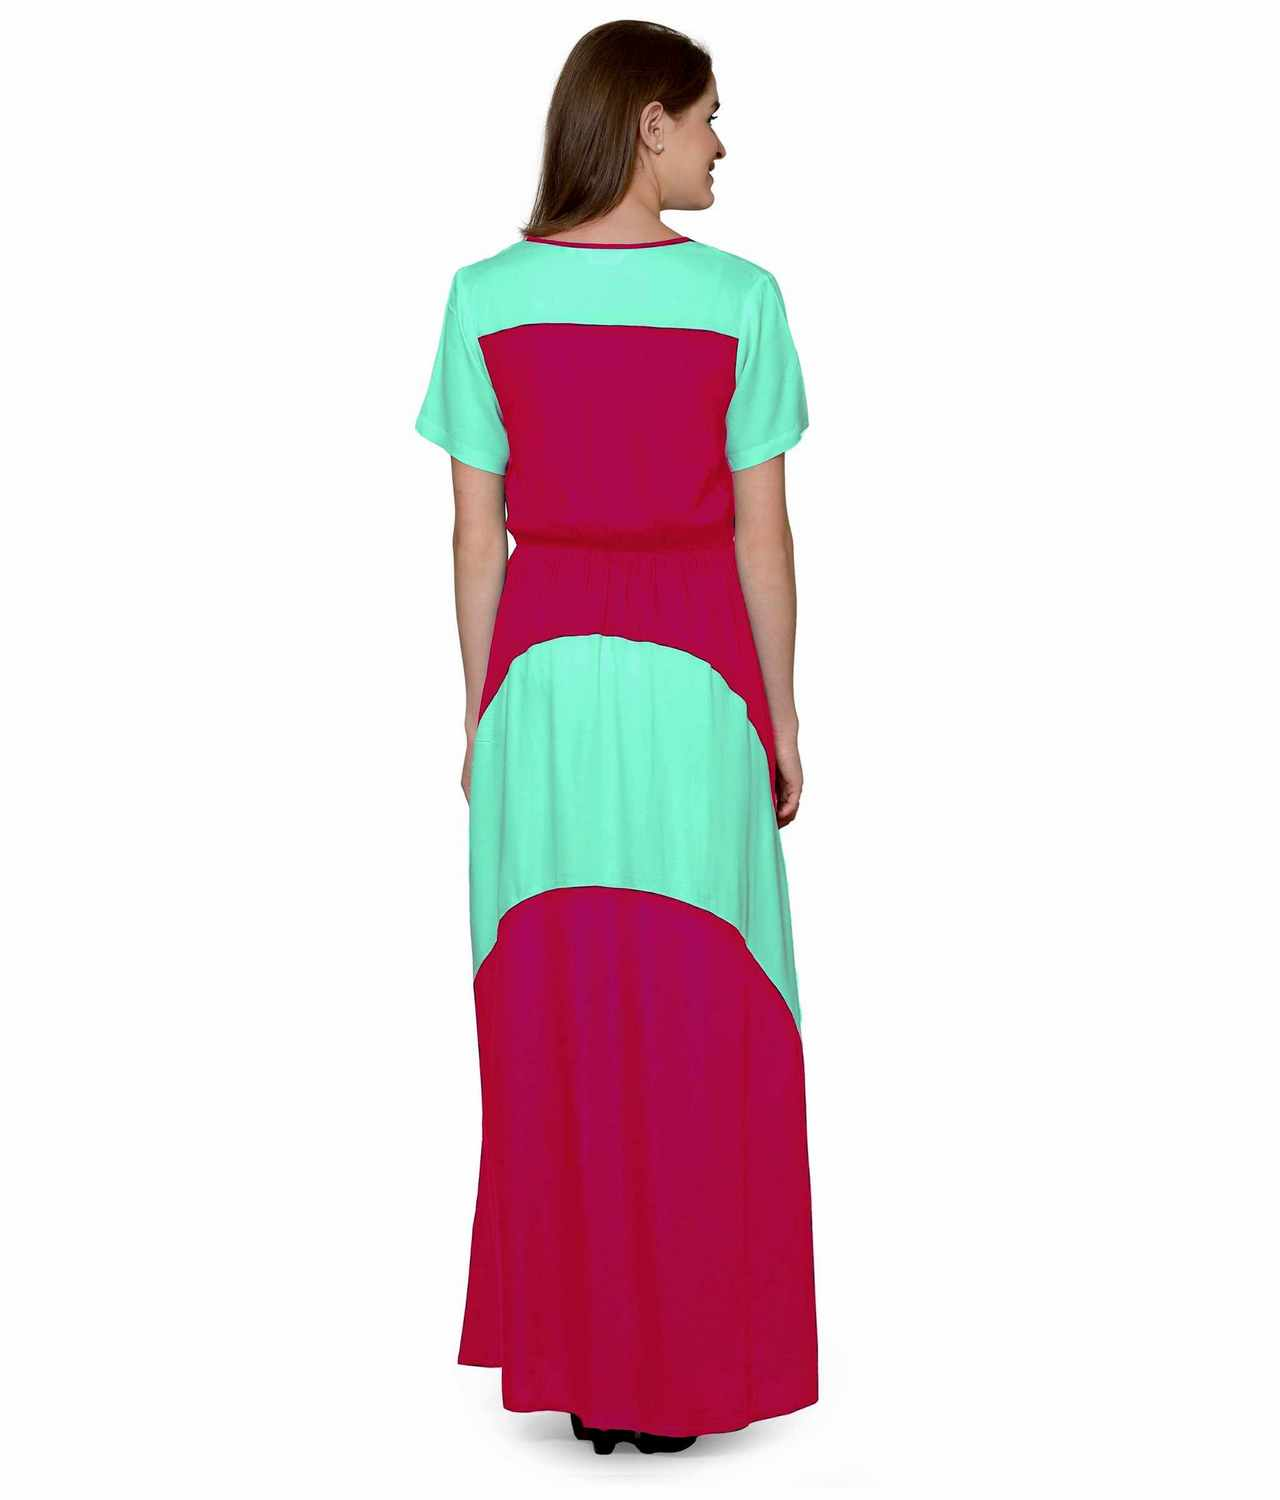 Color Block Slim Fit Maxi Dress Gown in Teal Green:Fuchsia